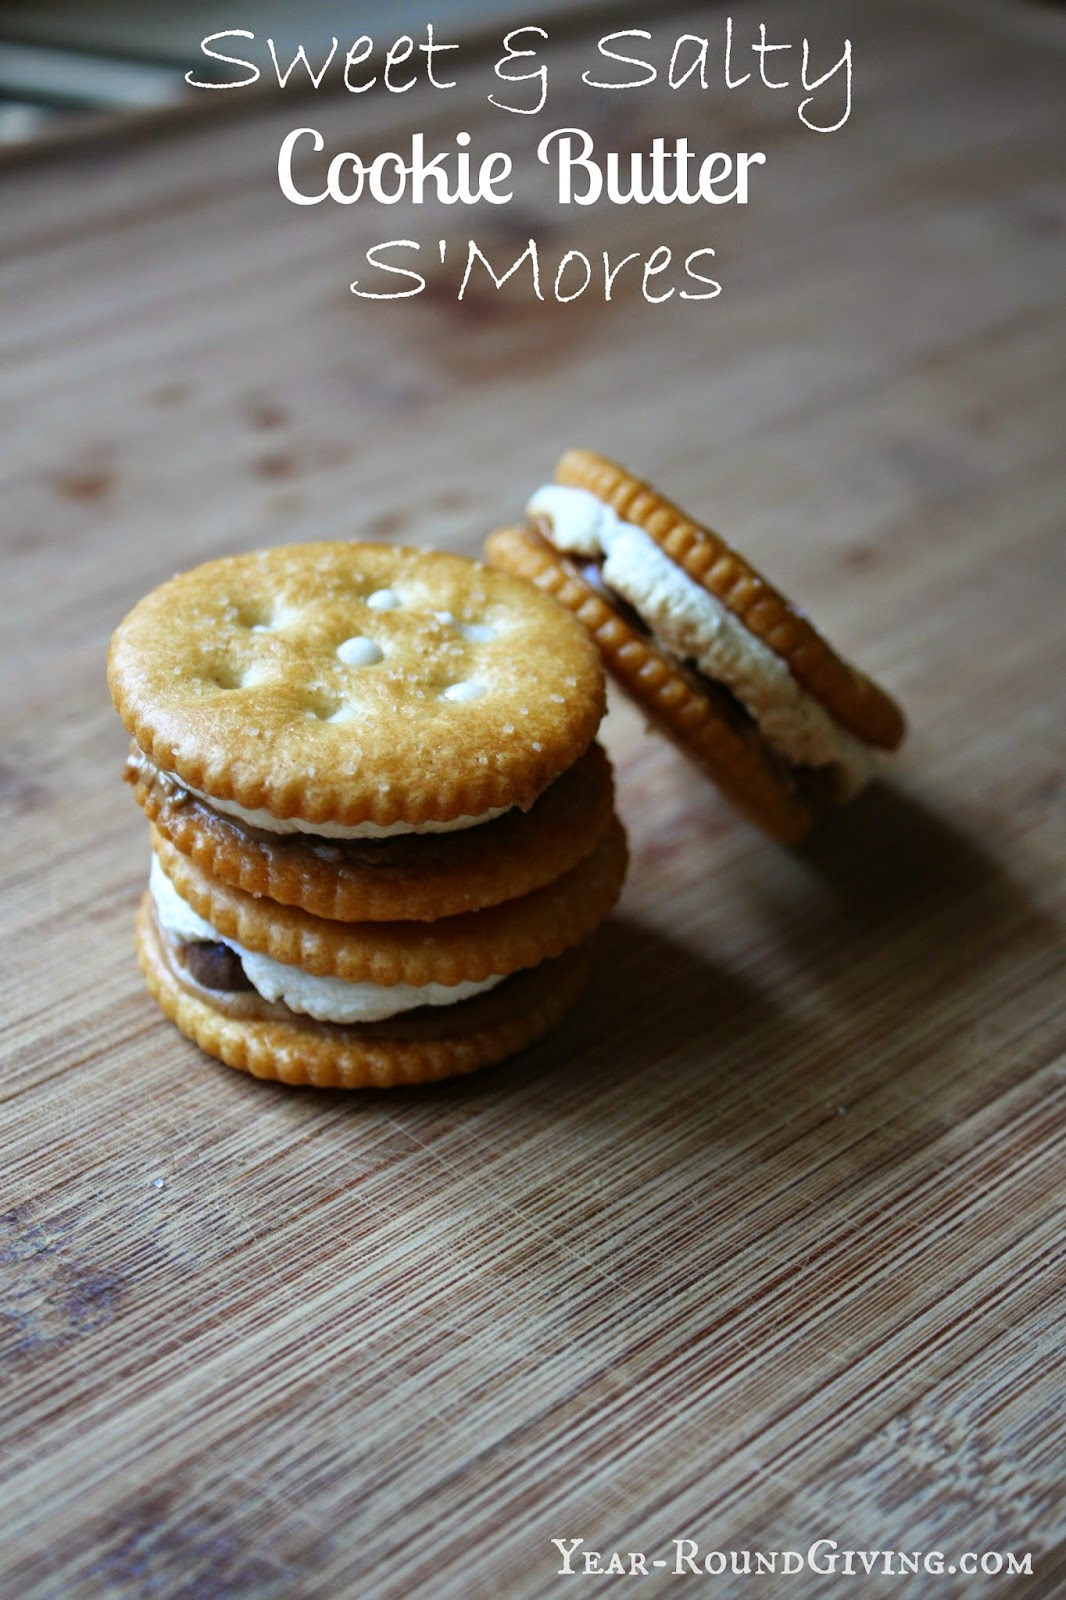 Sweet & Salty Cookie Butter S'mores